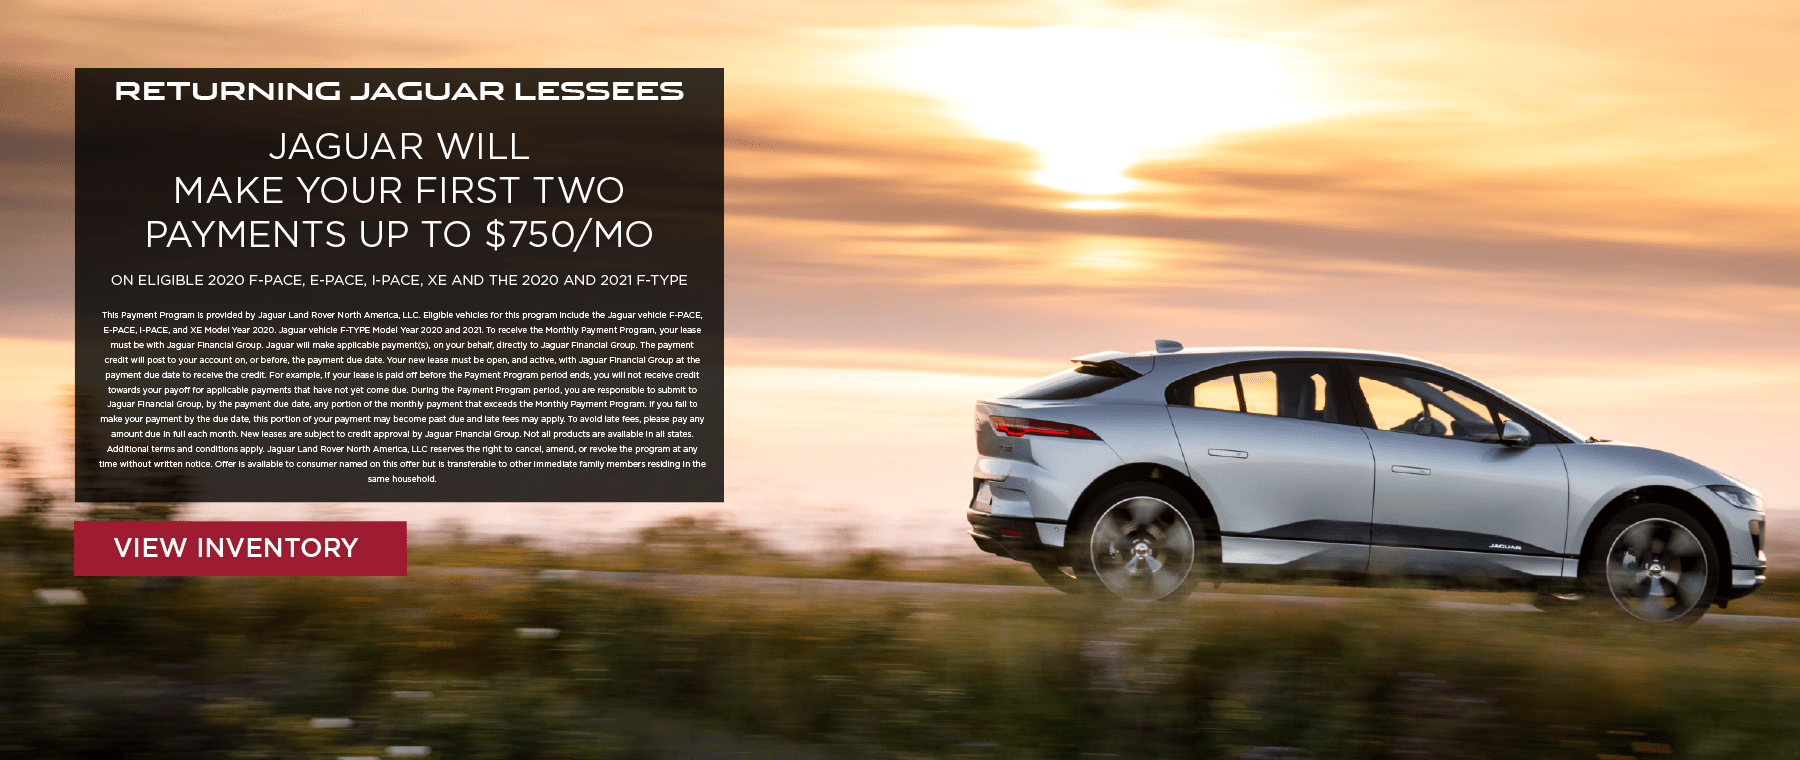 RETURNING JAGUAR LESSEES. JAGUAR WILL MAKE YOUR FIRST TWO PAYMENTS UP TO $750 MONTH ON ELIGIBLE 2020 F-PACE, E-PACE, I-PACE, XE AND THE 2020 AND 2021 F-TYPE. EXPIRES 6/1/2020. VIEW INVENTORY. SILVER JAGUAR I-PACE DRIVING DOWN ROAD AT SUNSET.